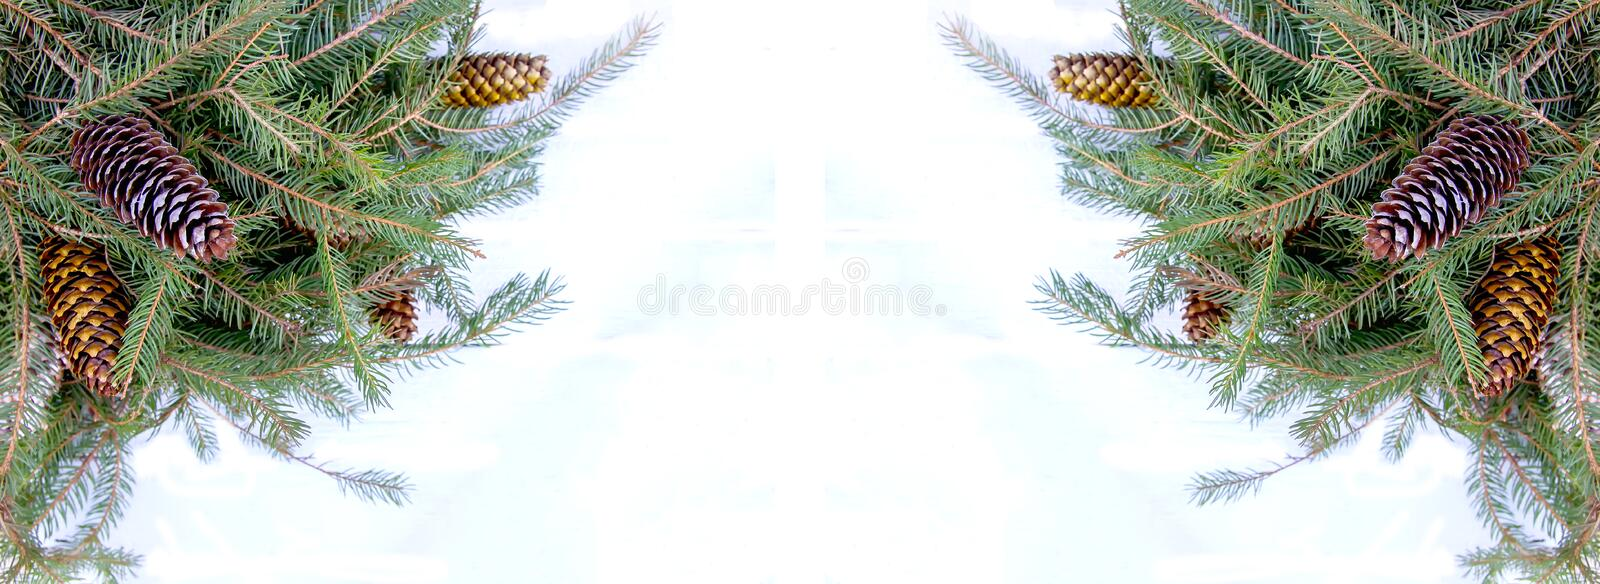 Christmas composition with fir tree branches and cones on white background. New Year festive design template. Symmetrical banner stock photos